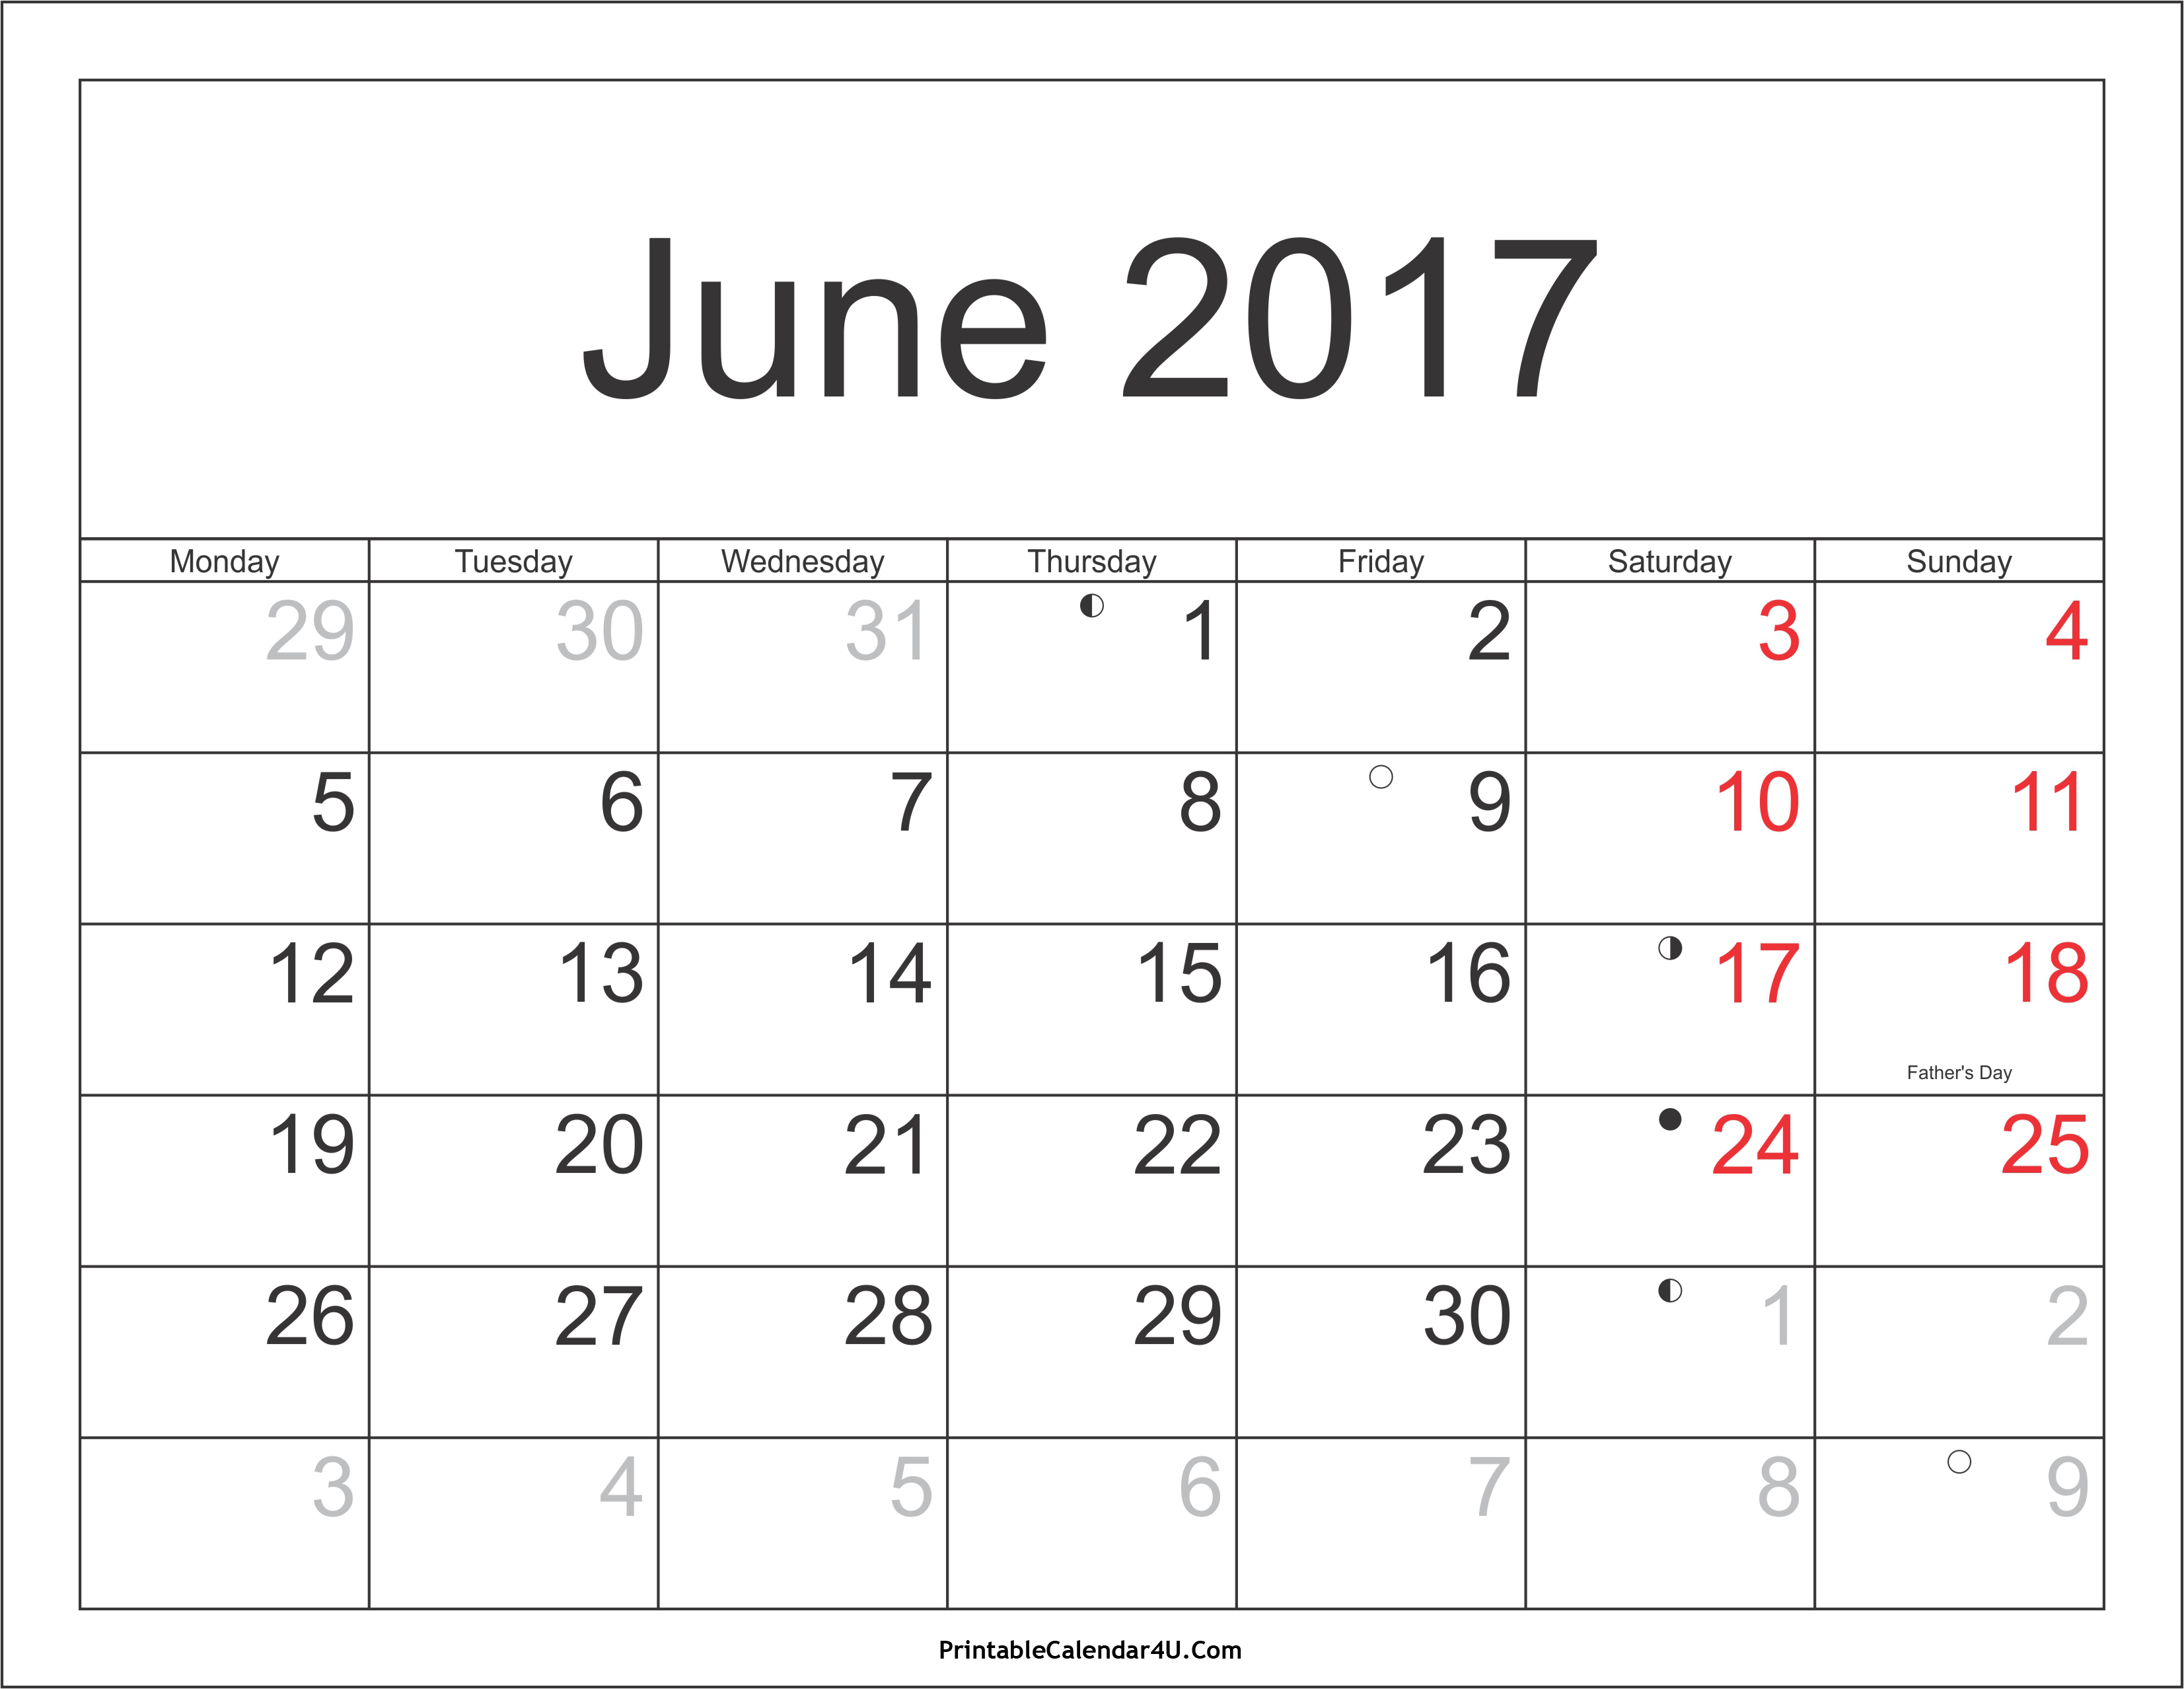 JUne 2017 Calendar with Holidays